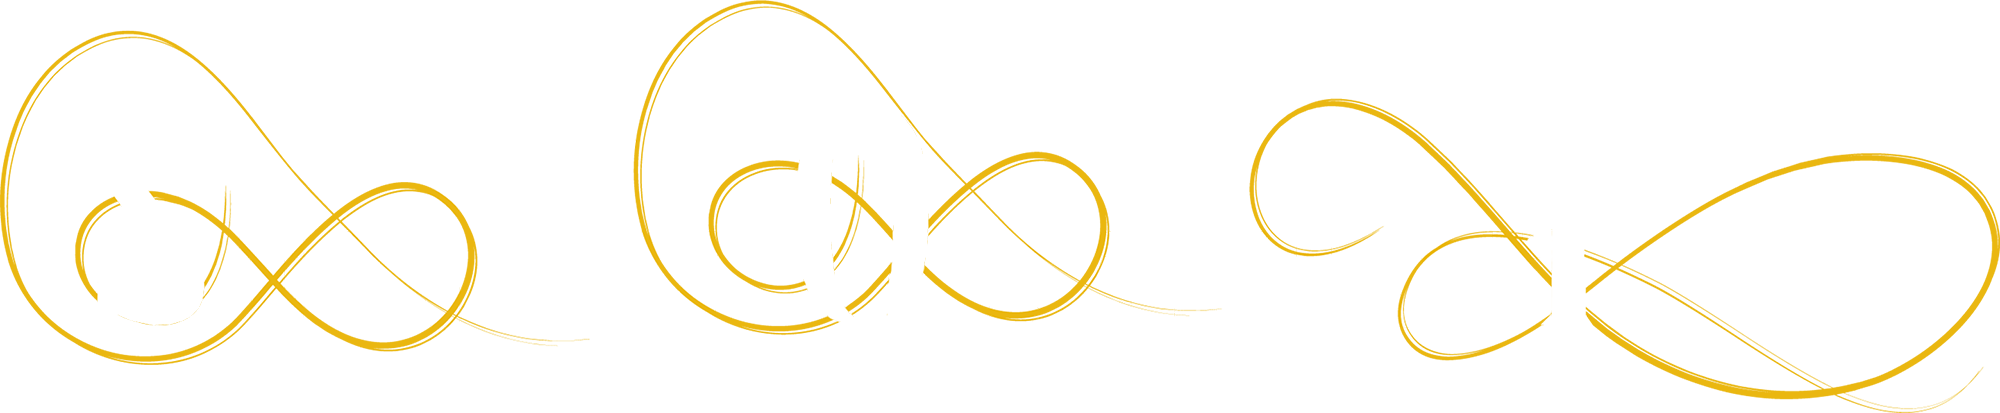 Connolly-Music-String-Ovation-Logo-1.png